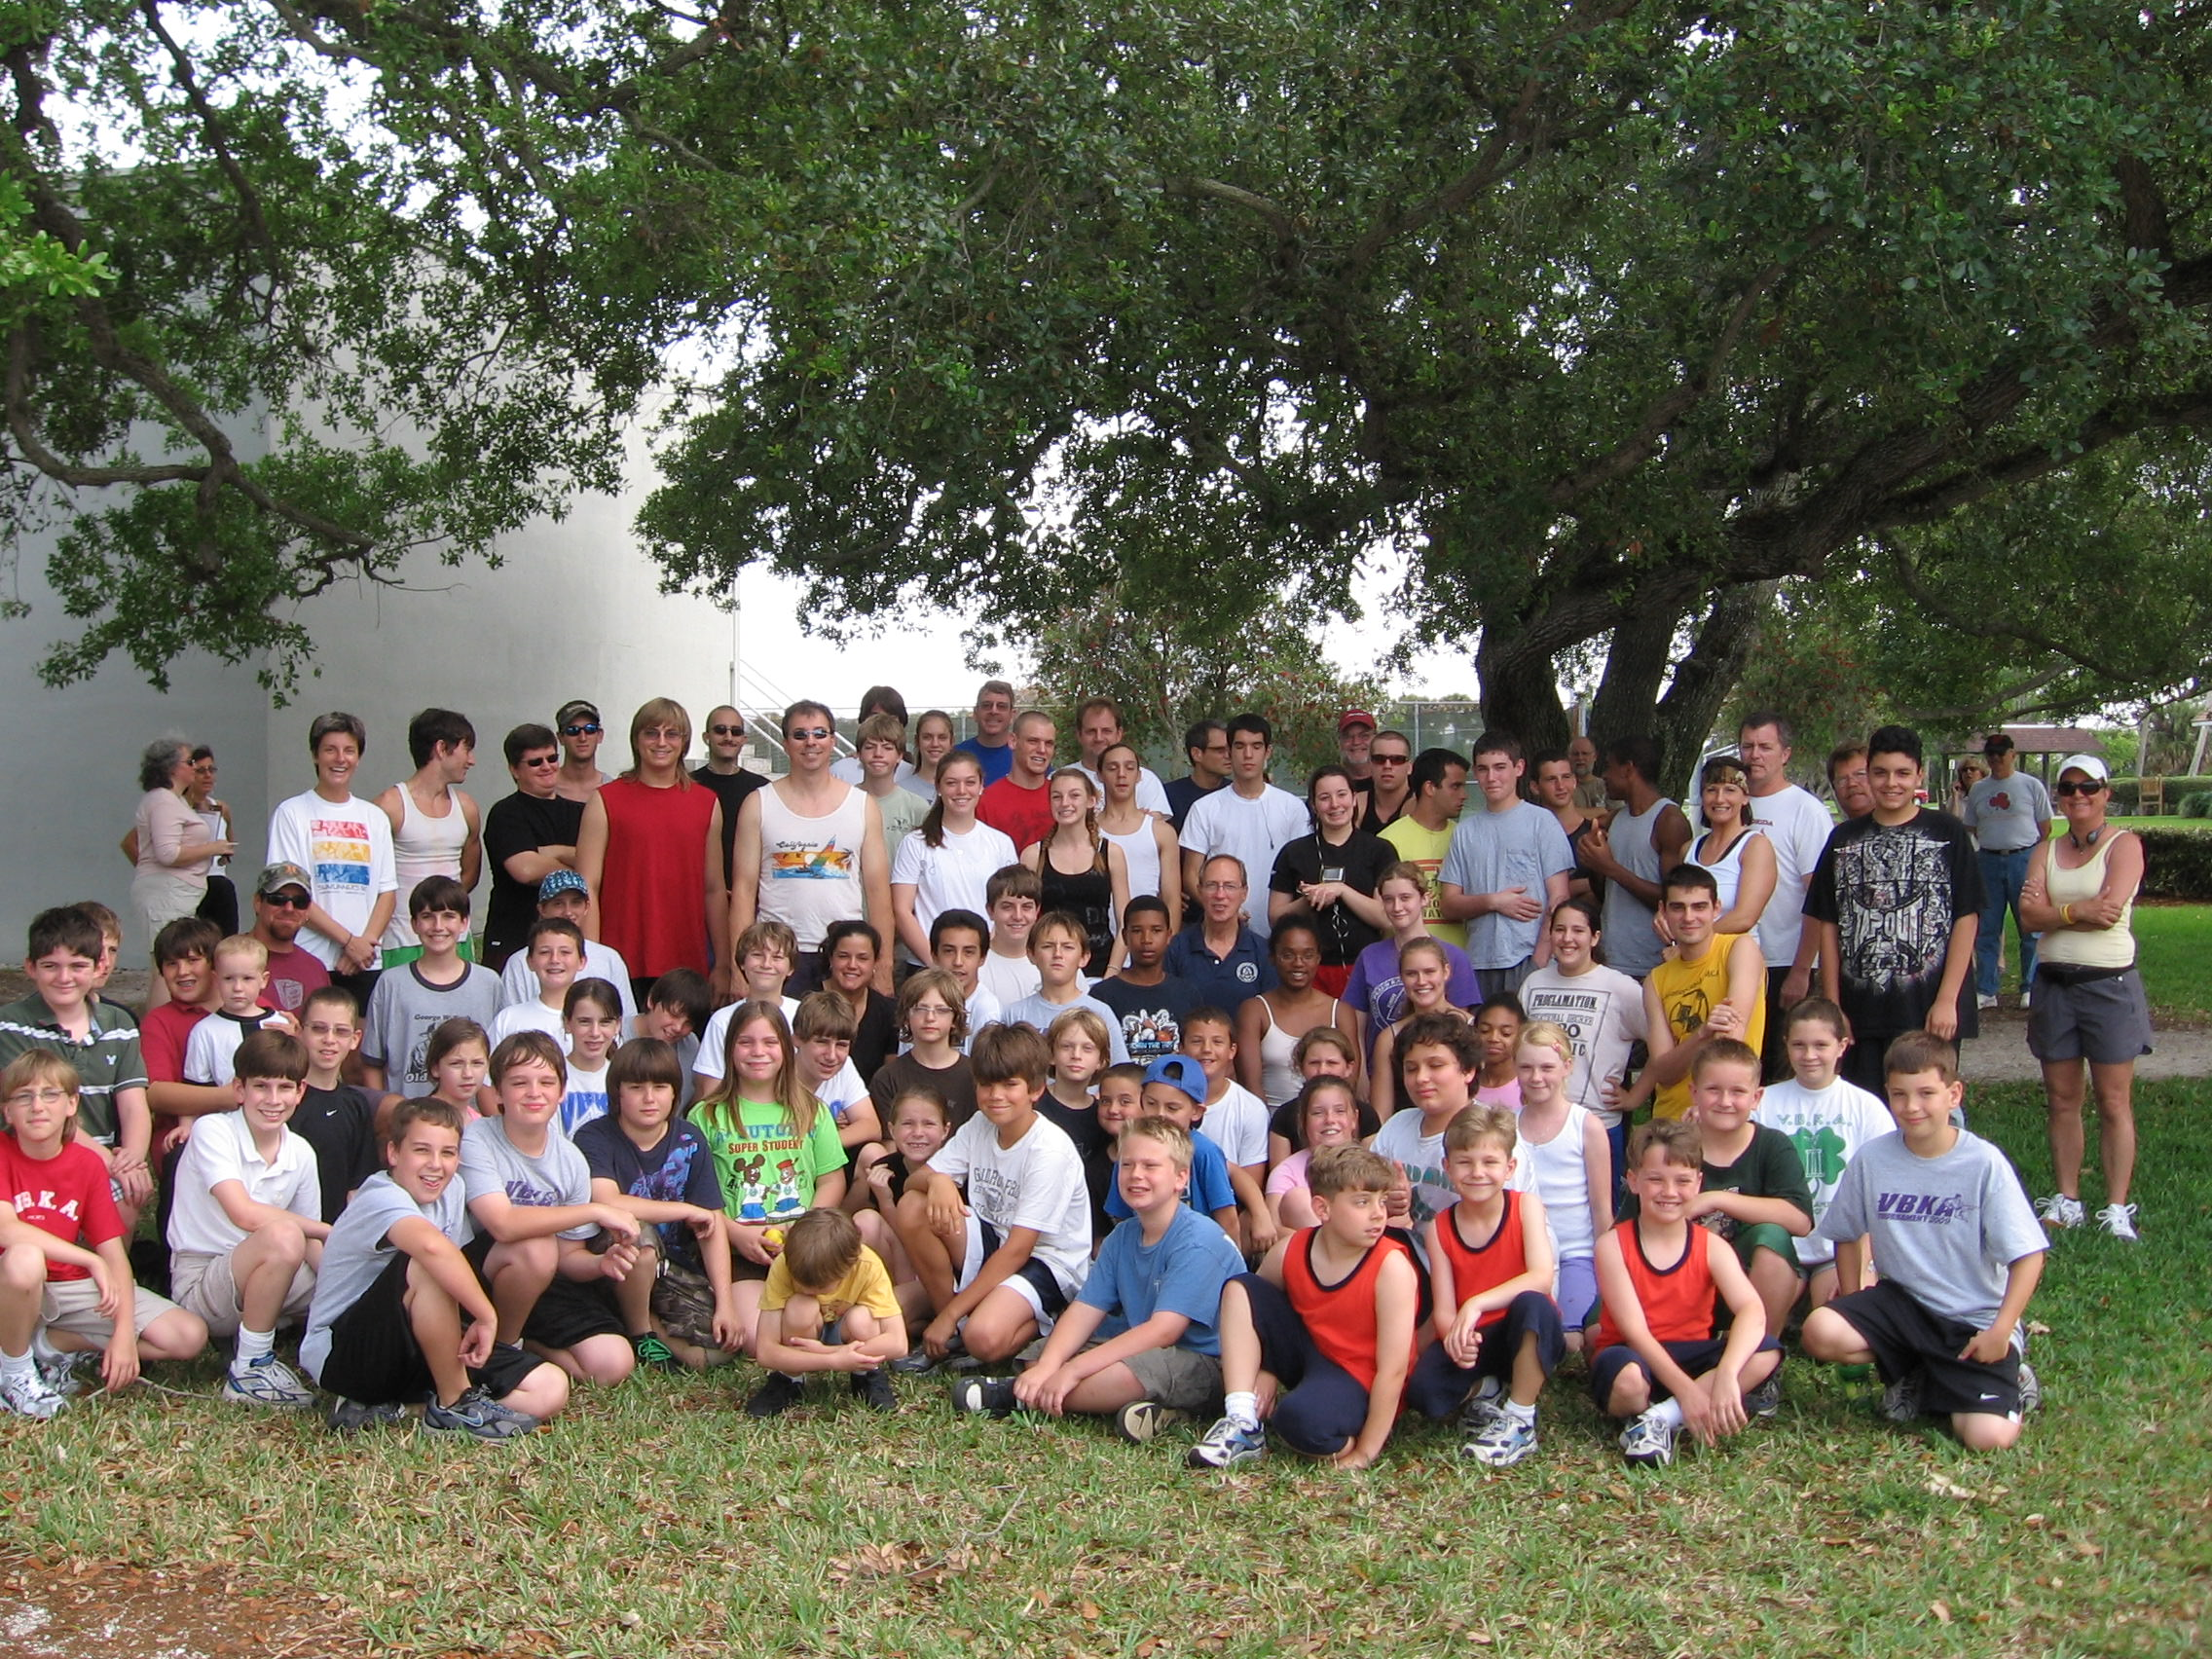 Fun Run - Vero Beach